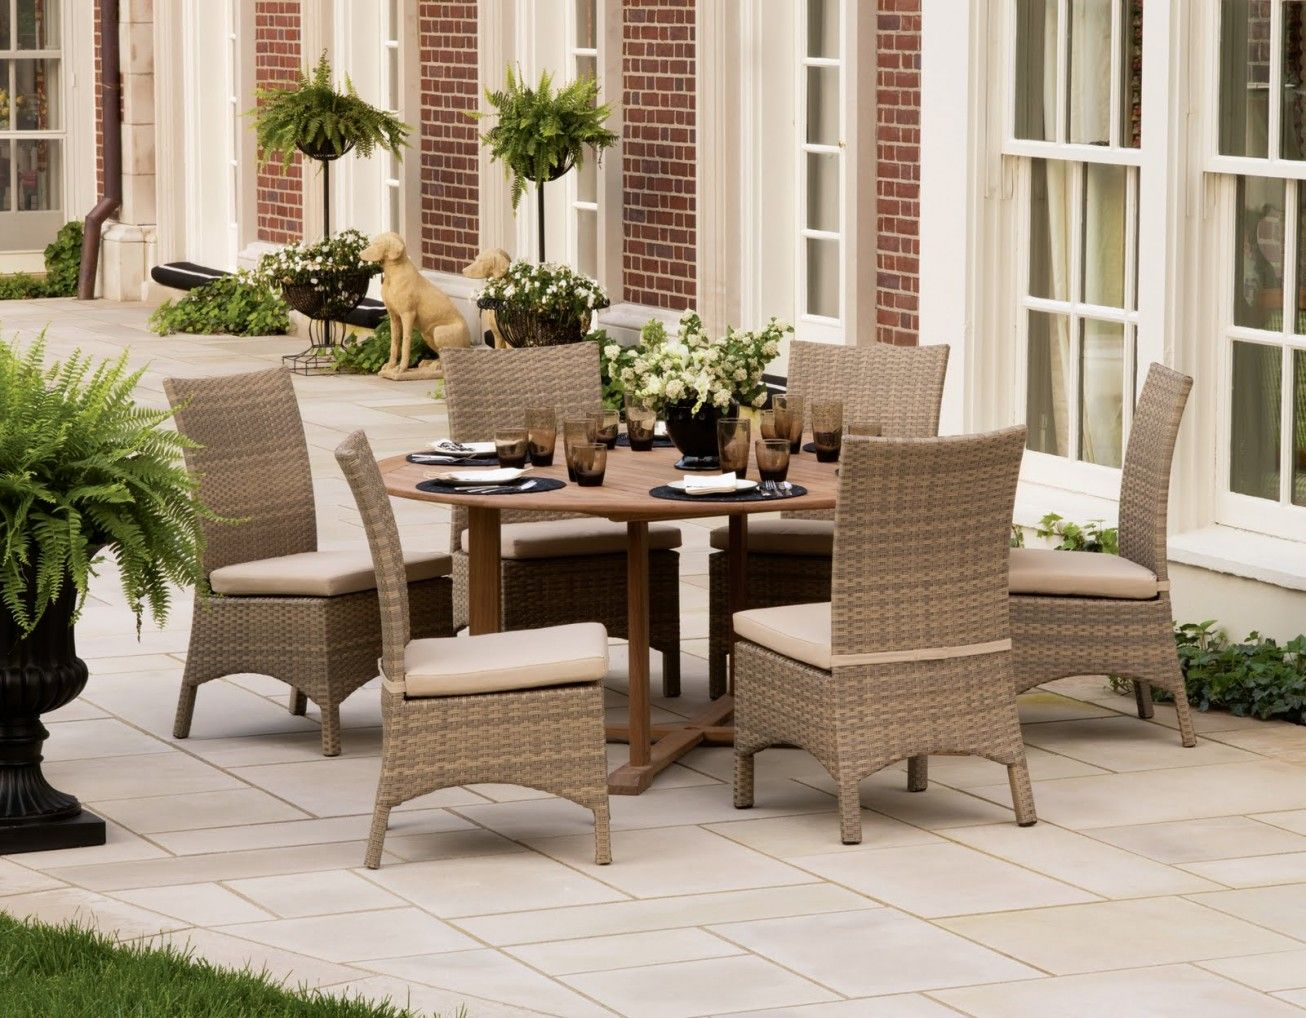 Remarkable Patio Furniture Home Accessories With Outdoor Dining Set Wicker  Dining Chairs For Outdoor Furniture Repair